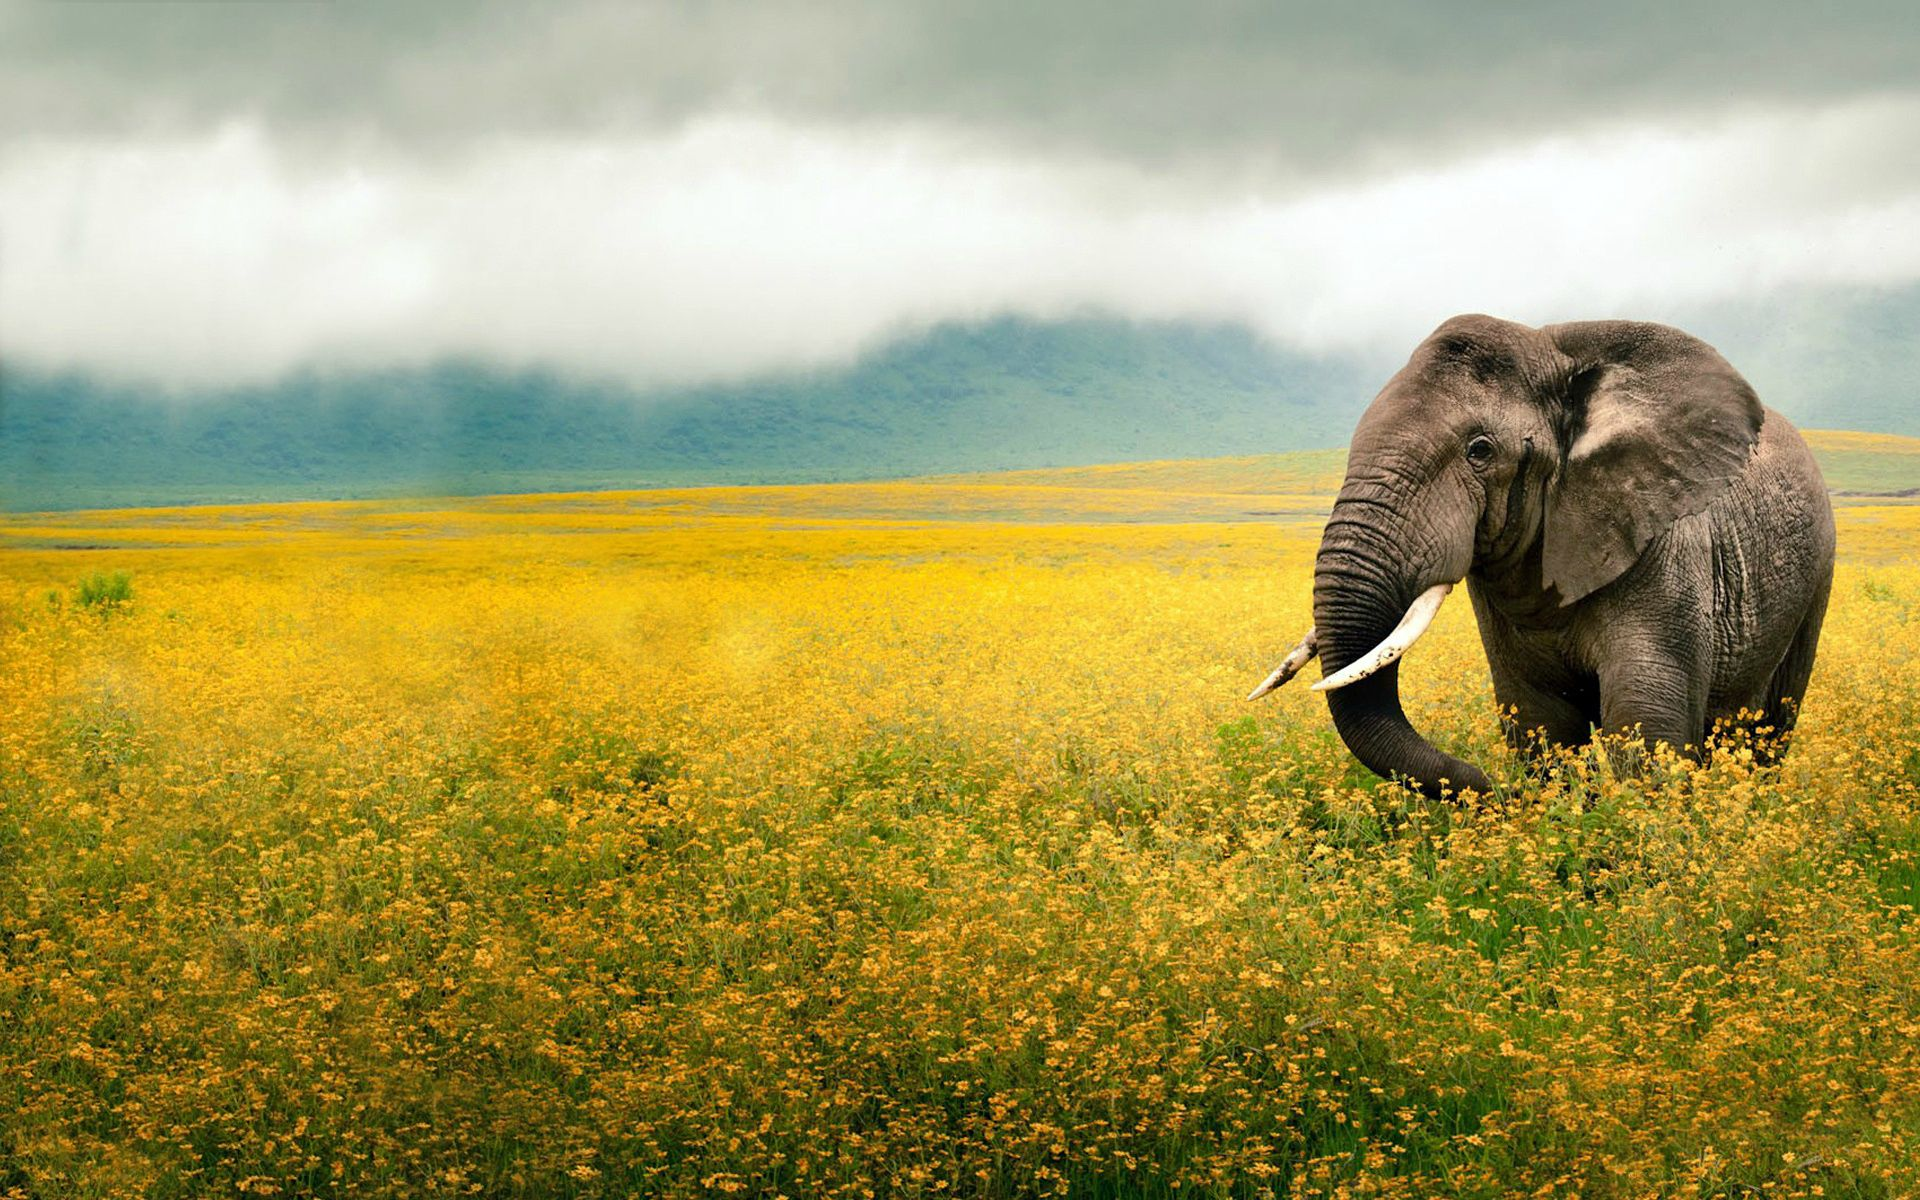 Elephant And Sunflower Background HD Wallpaper